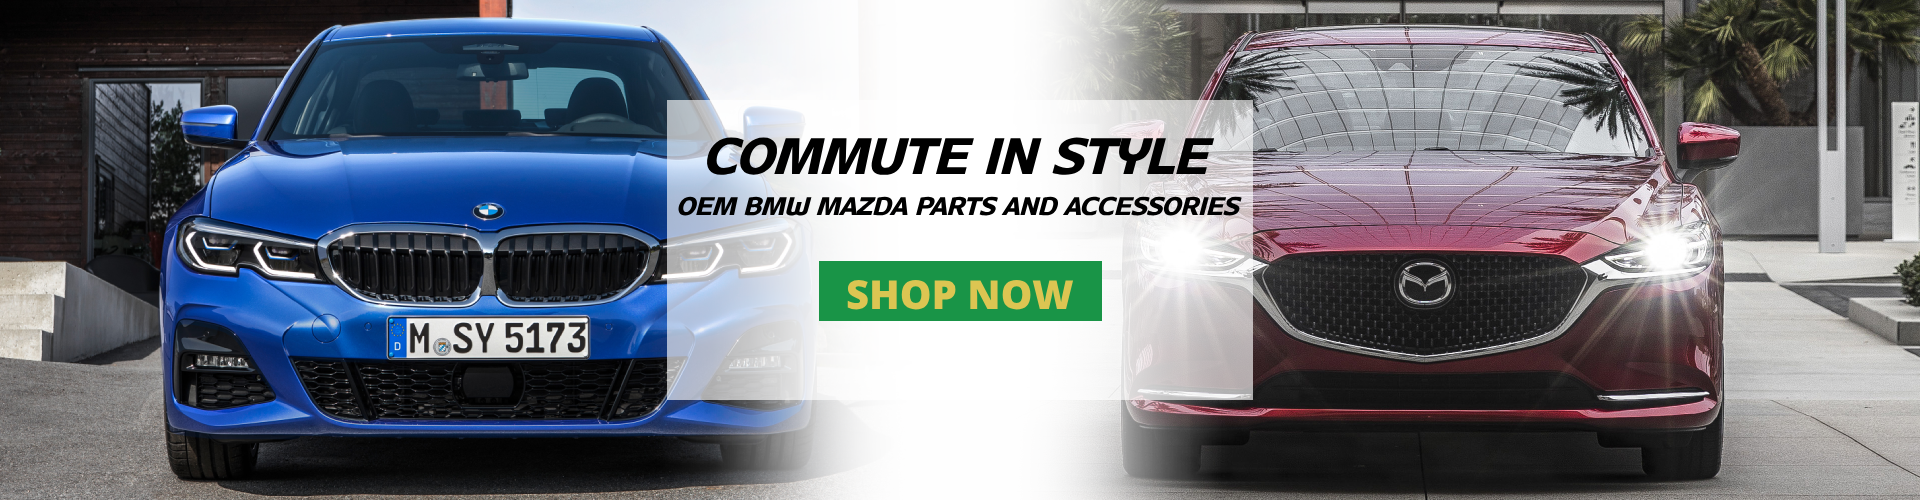 Genuine BMW Mazda Parts and Accessories